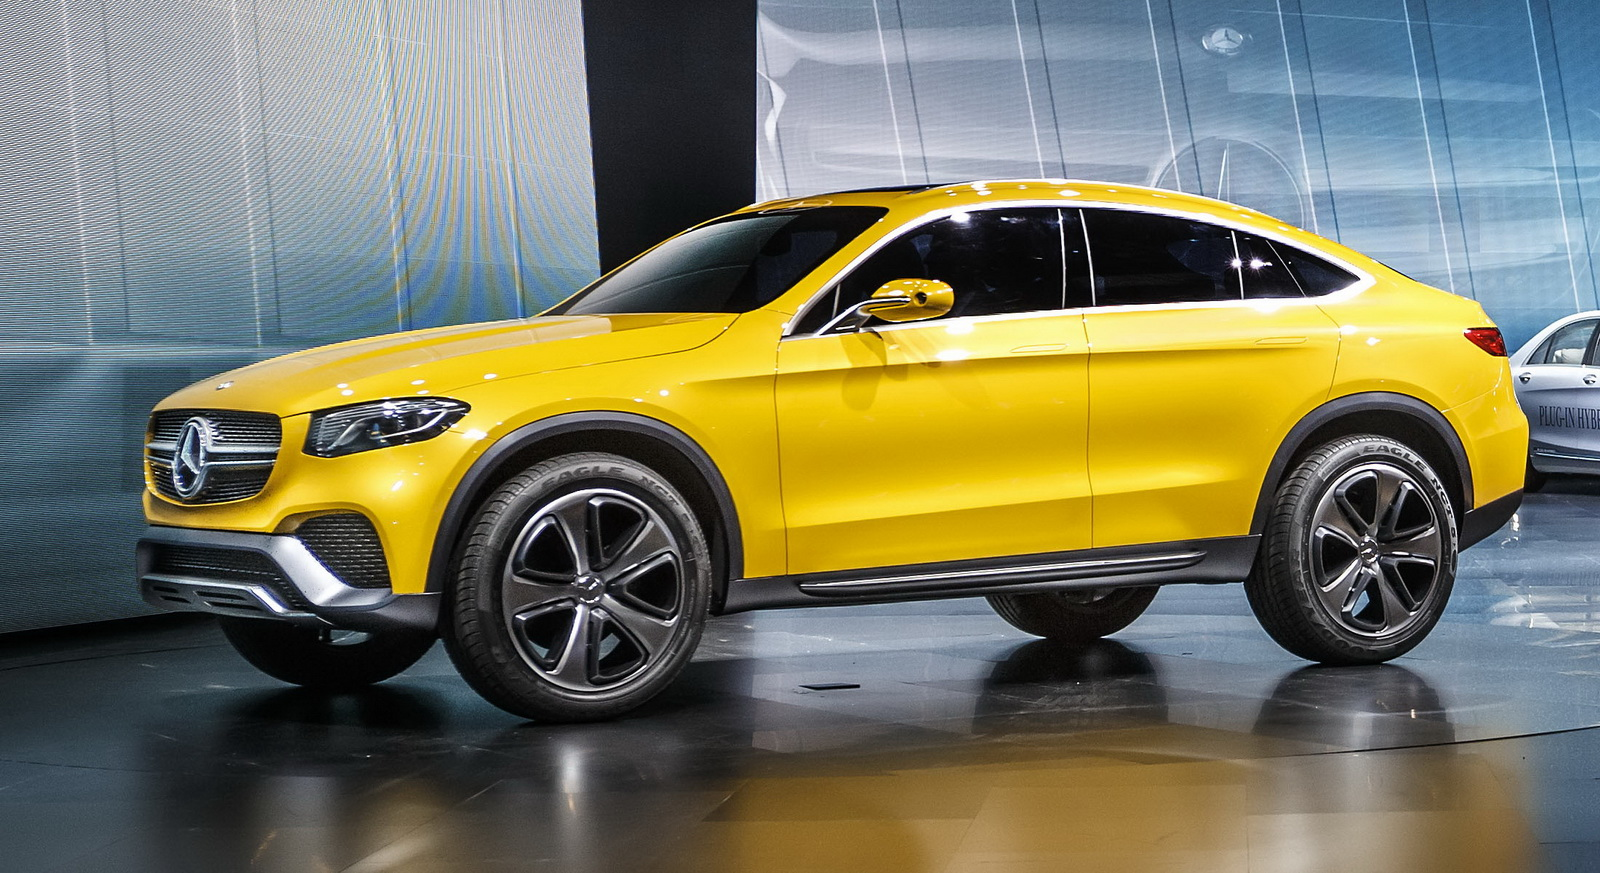 Mercedes thinly disguises production model with the glc for Mercedes benz suv coupe